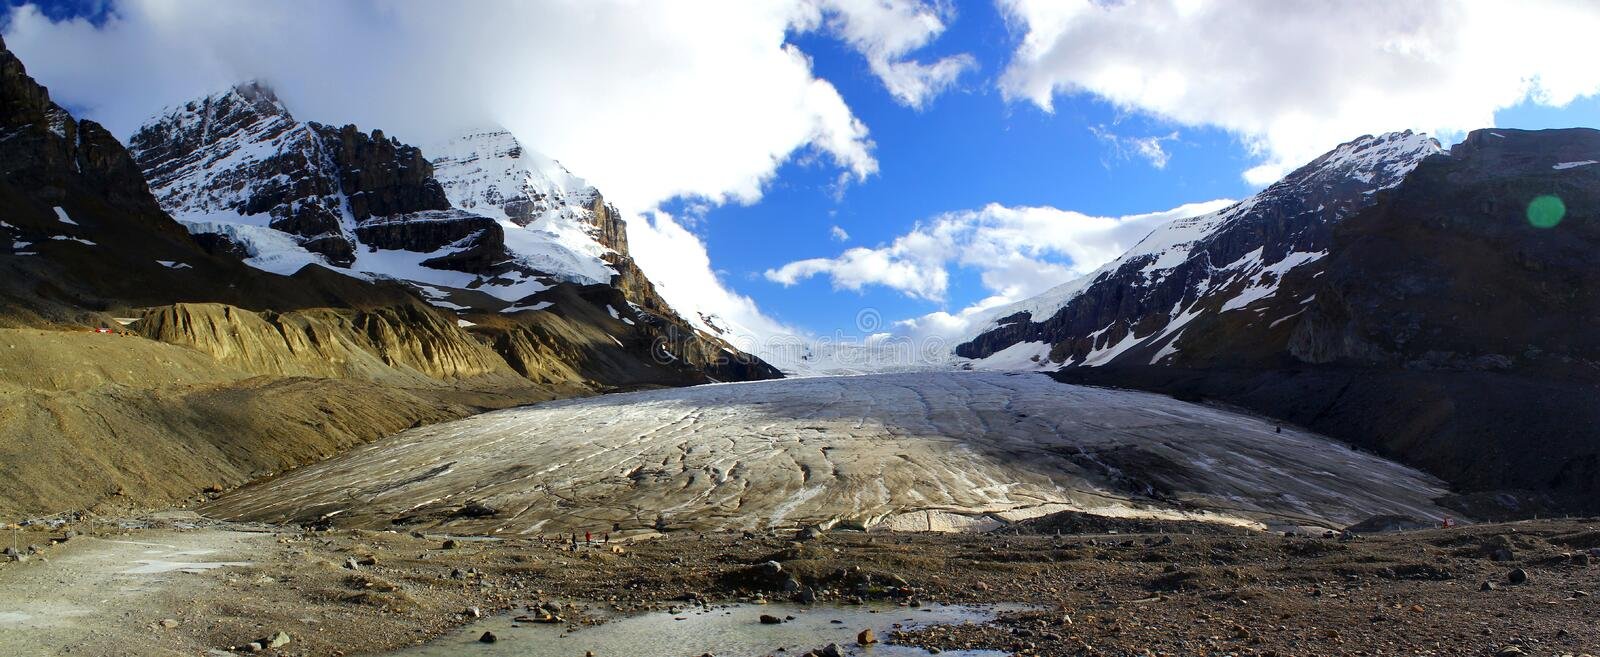 Wonderful Panoramic view of Athabasca Galcier / Columbia Icefield in Alberta / British Columbia - Canada stock photos